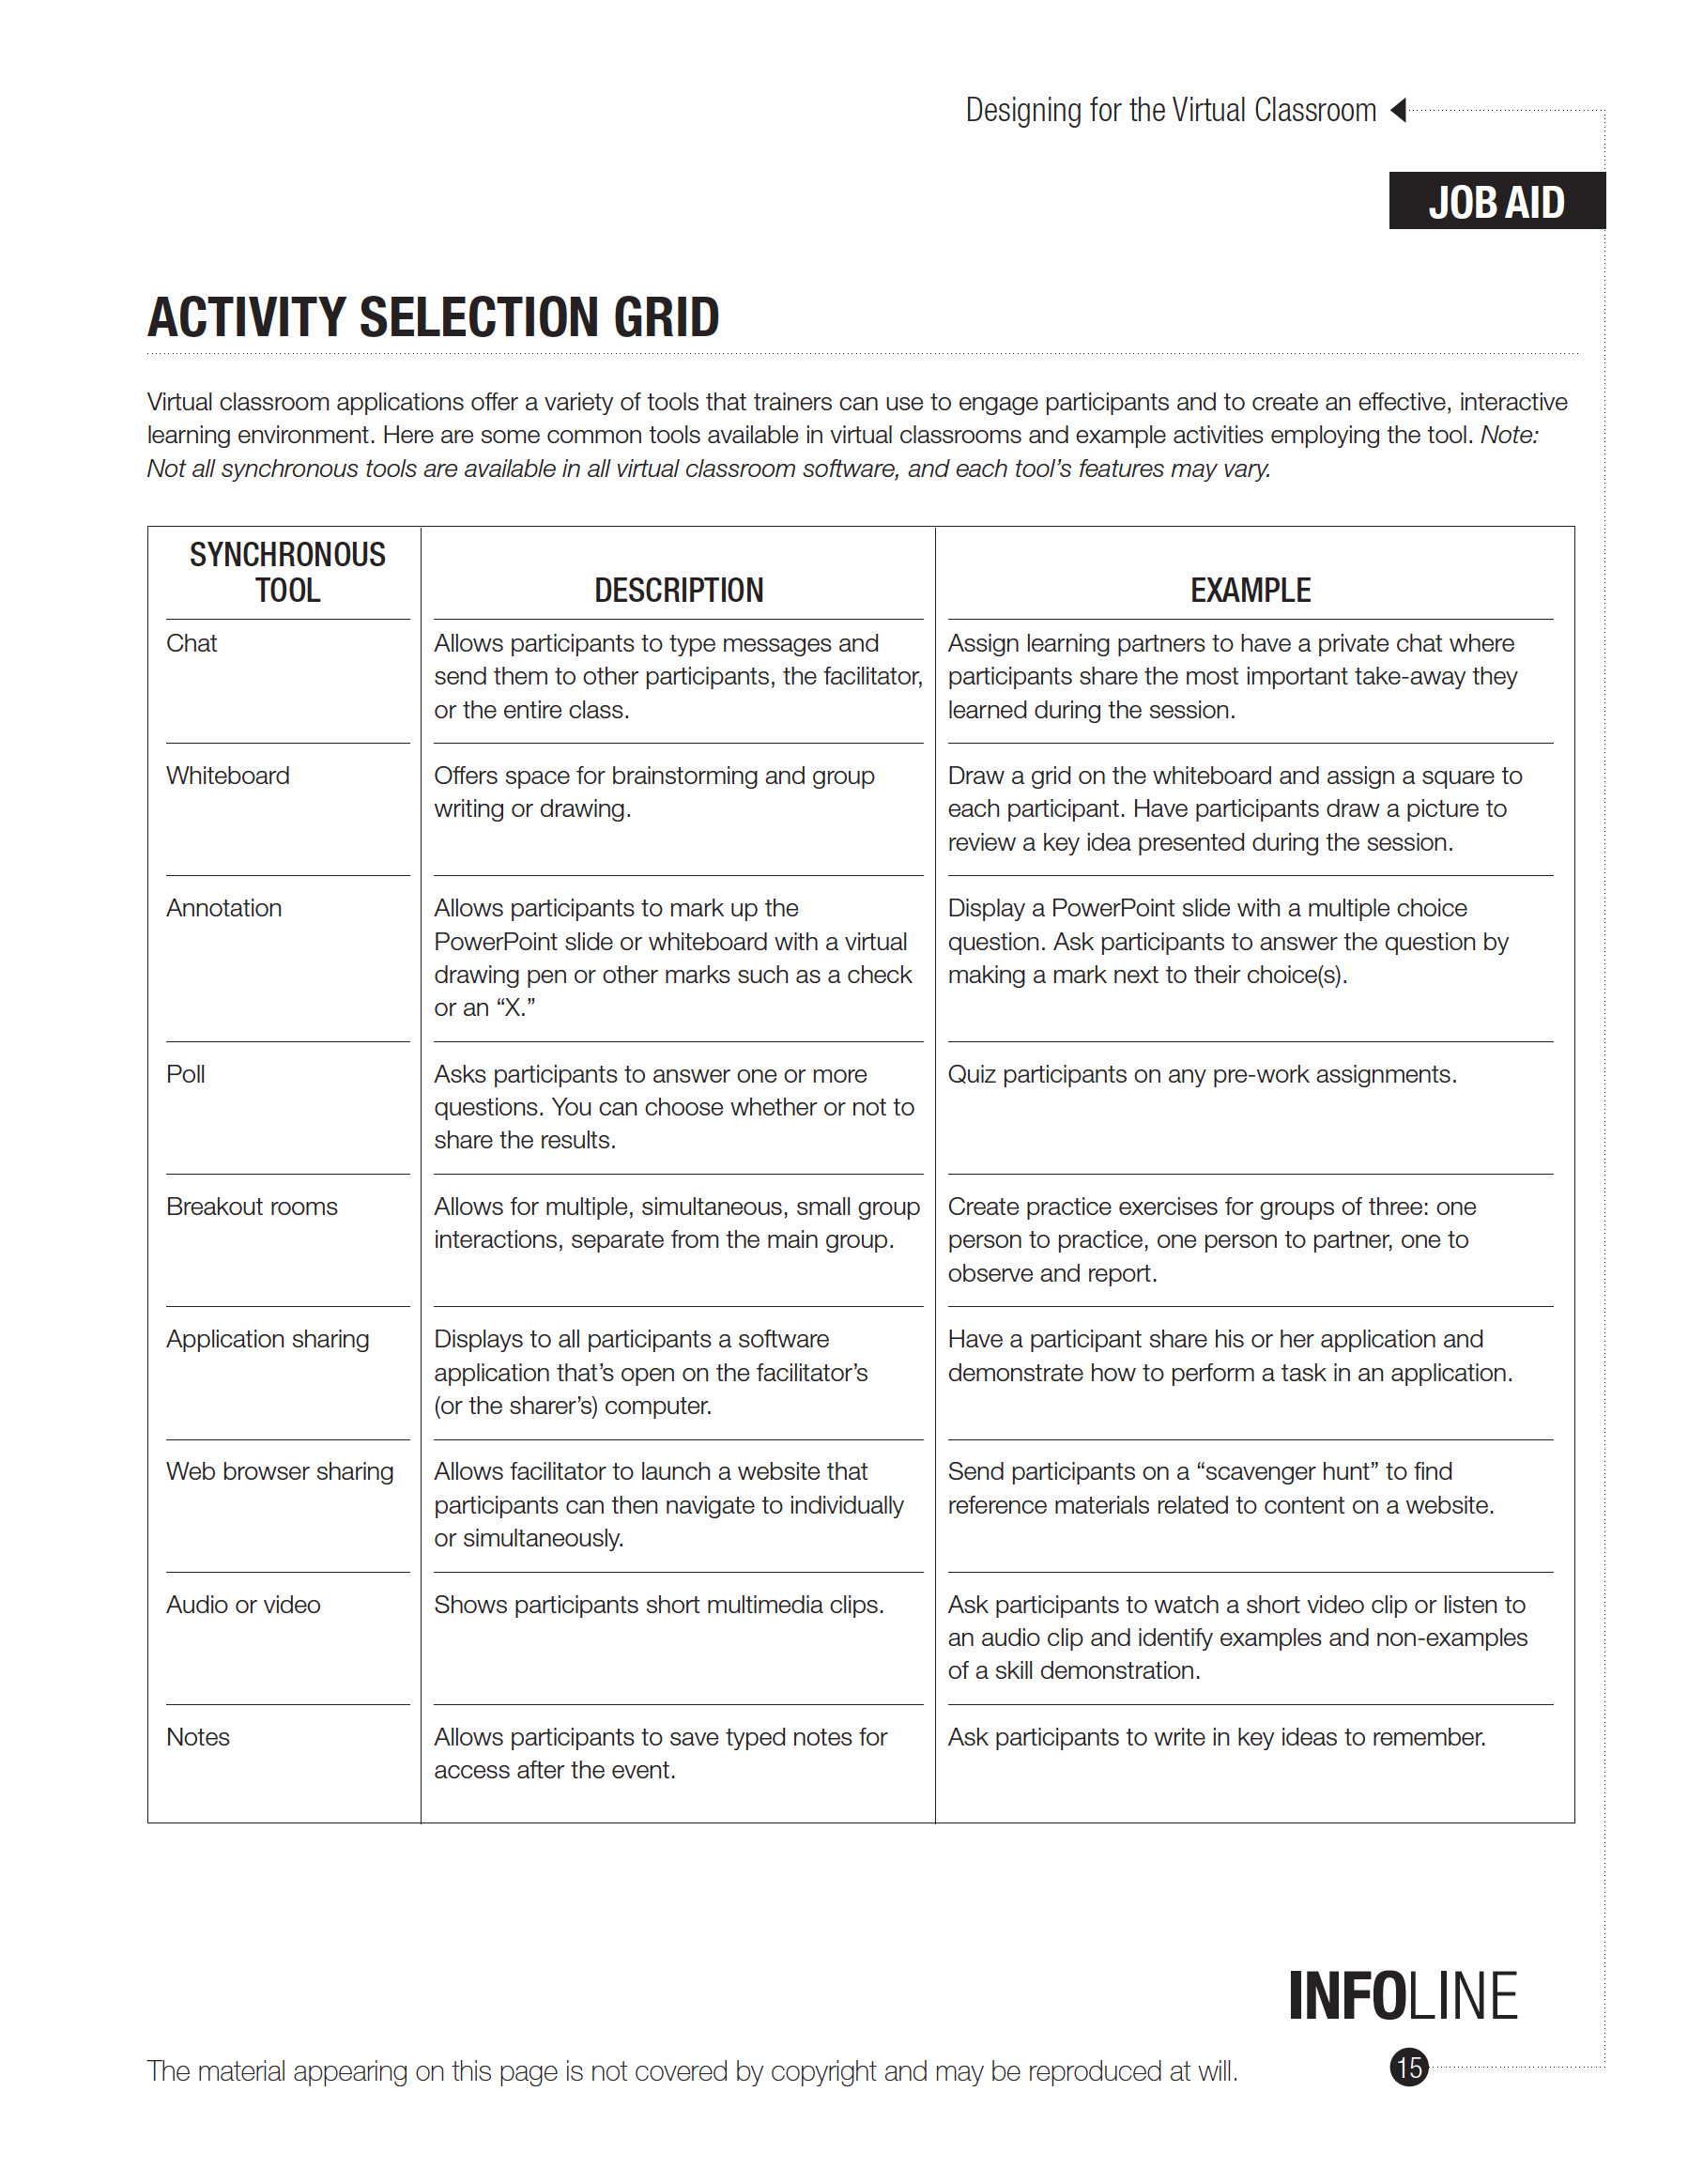 virtual activity selection grid